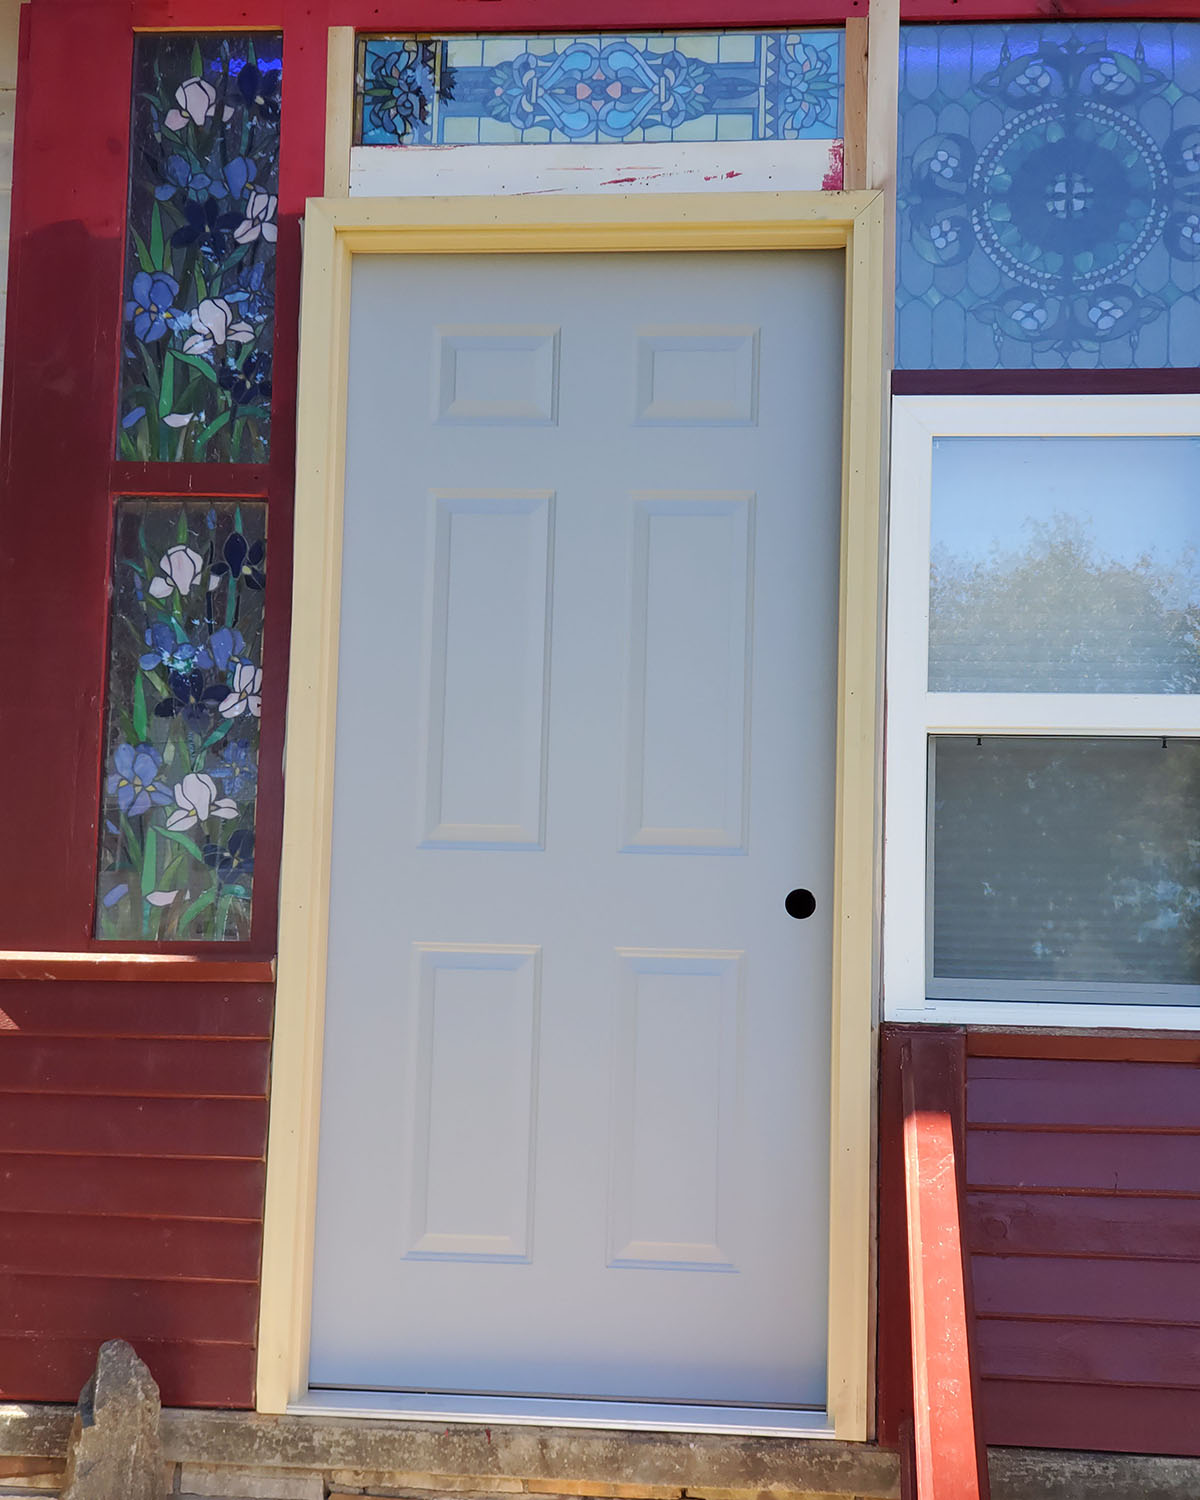 A door and storm door to enclose the porch.